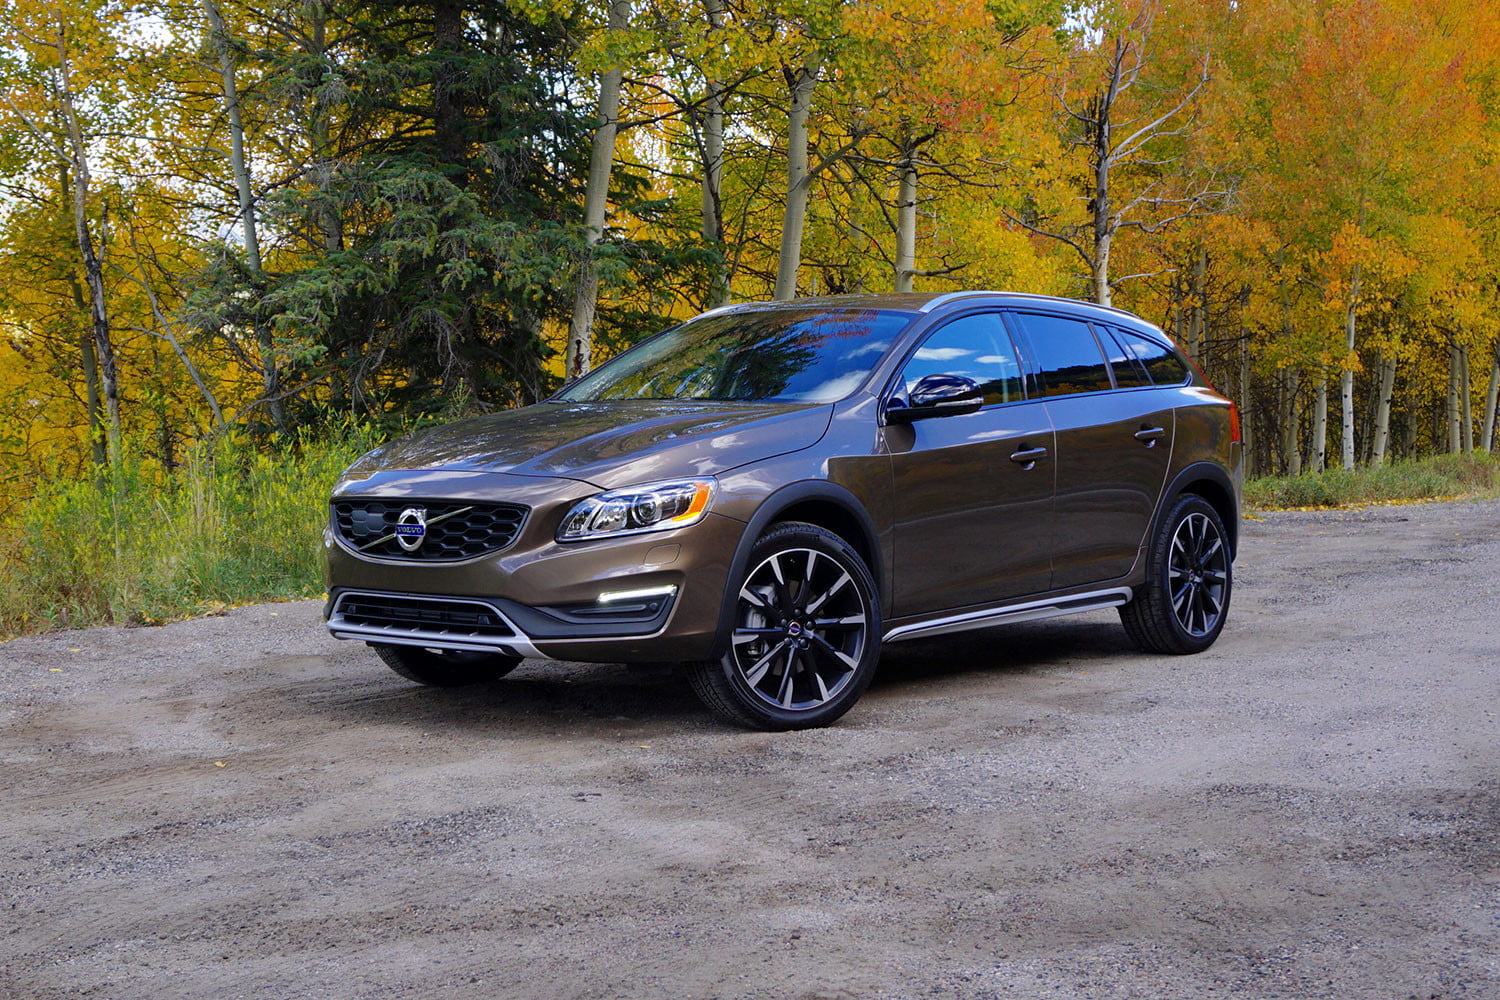 2017 volvo v60 cross country: first drive, price, and more | digital